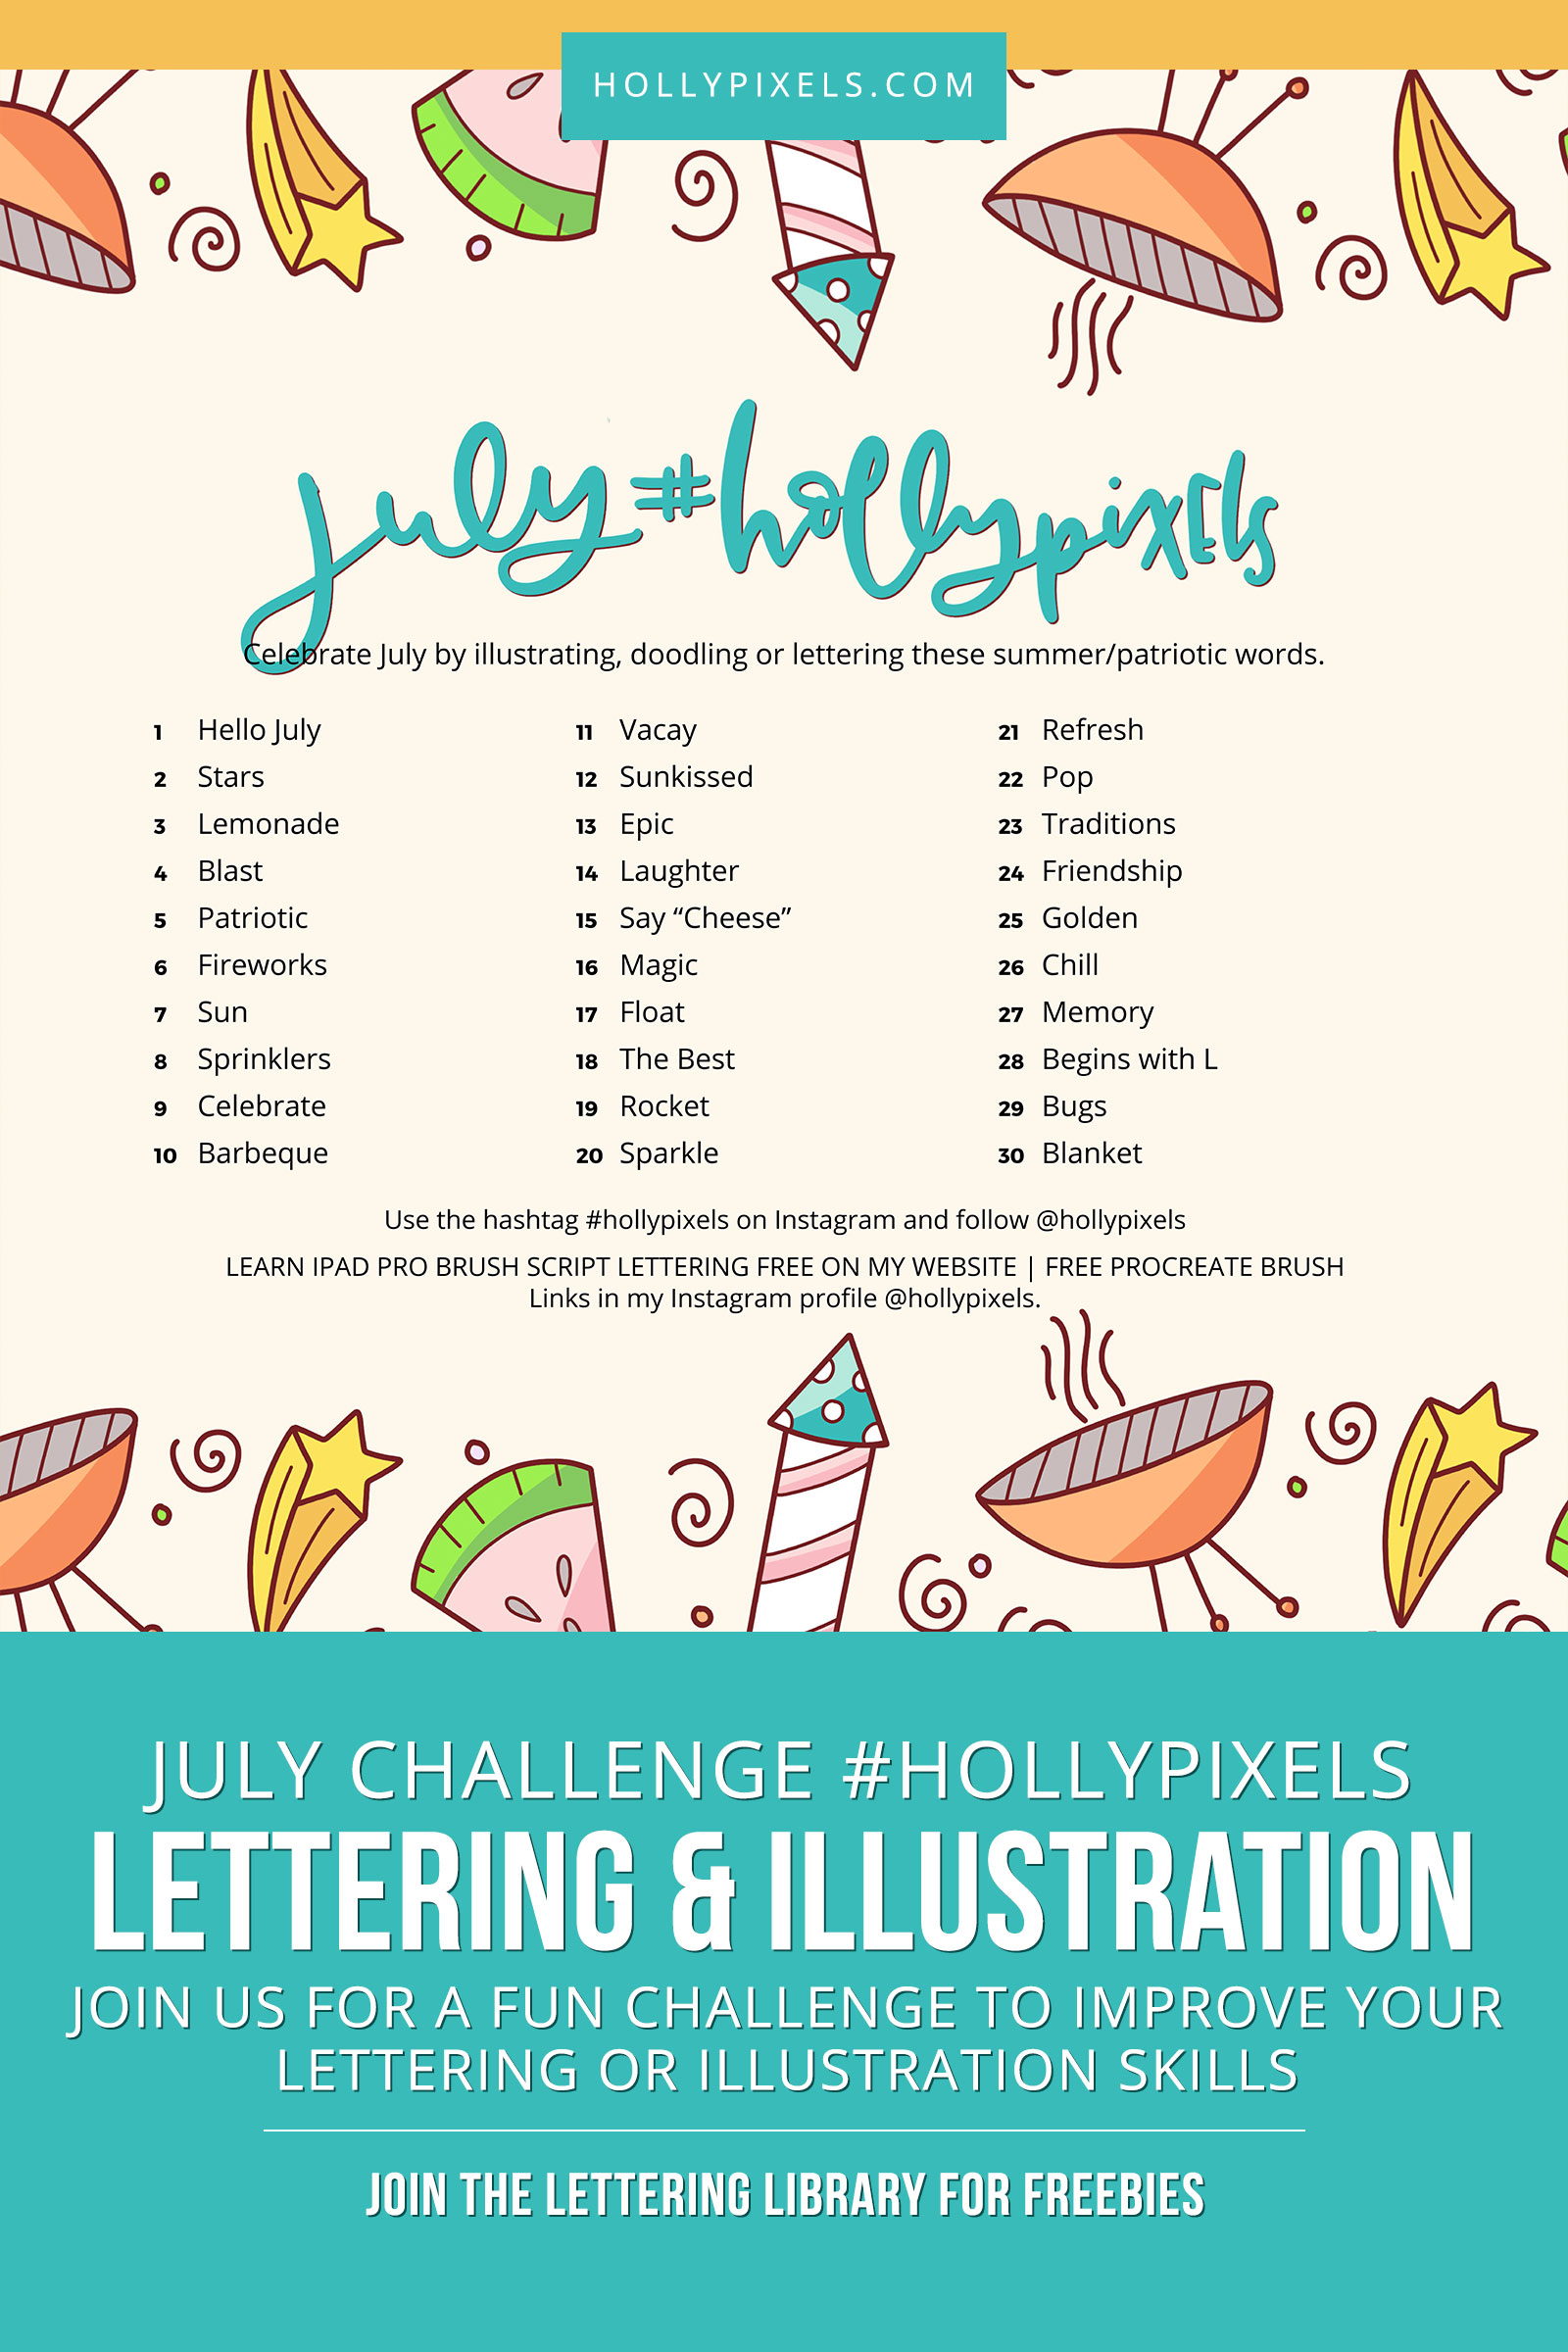 New lettering challenge or illustration challenge and lettering prompts for the month of July hosted by Holly Pixels. Use #hollypixels on Instagram and follow me at @hollypixels.